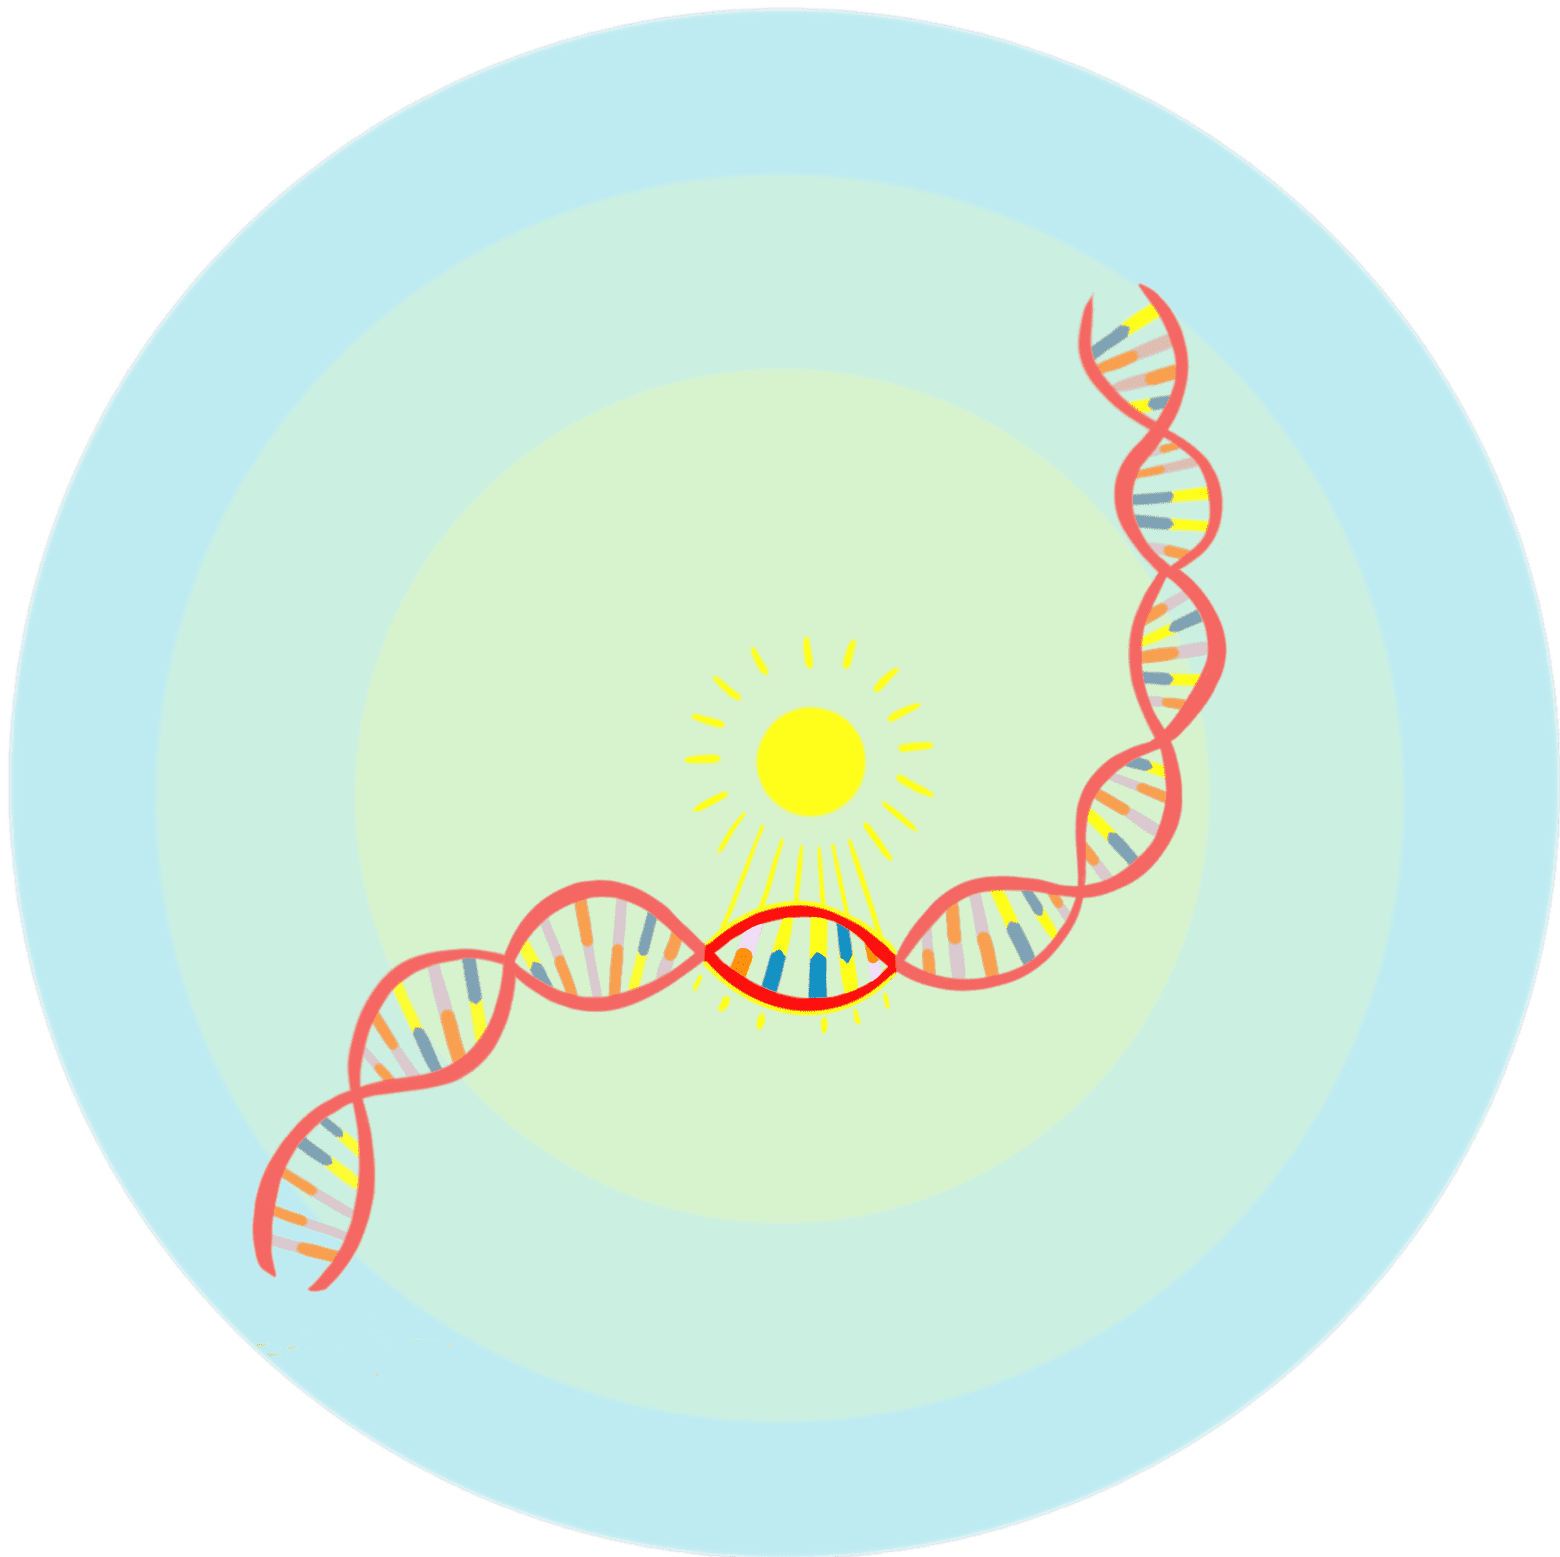 Illustration of DNA with the sun shining behind it